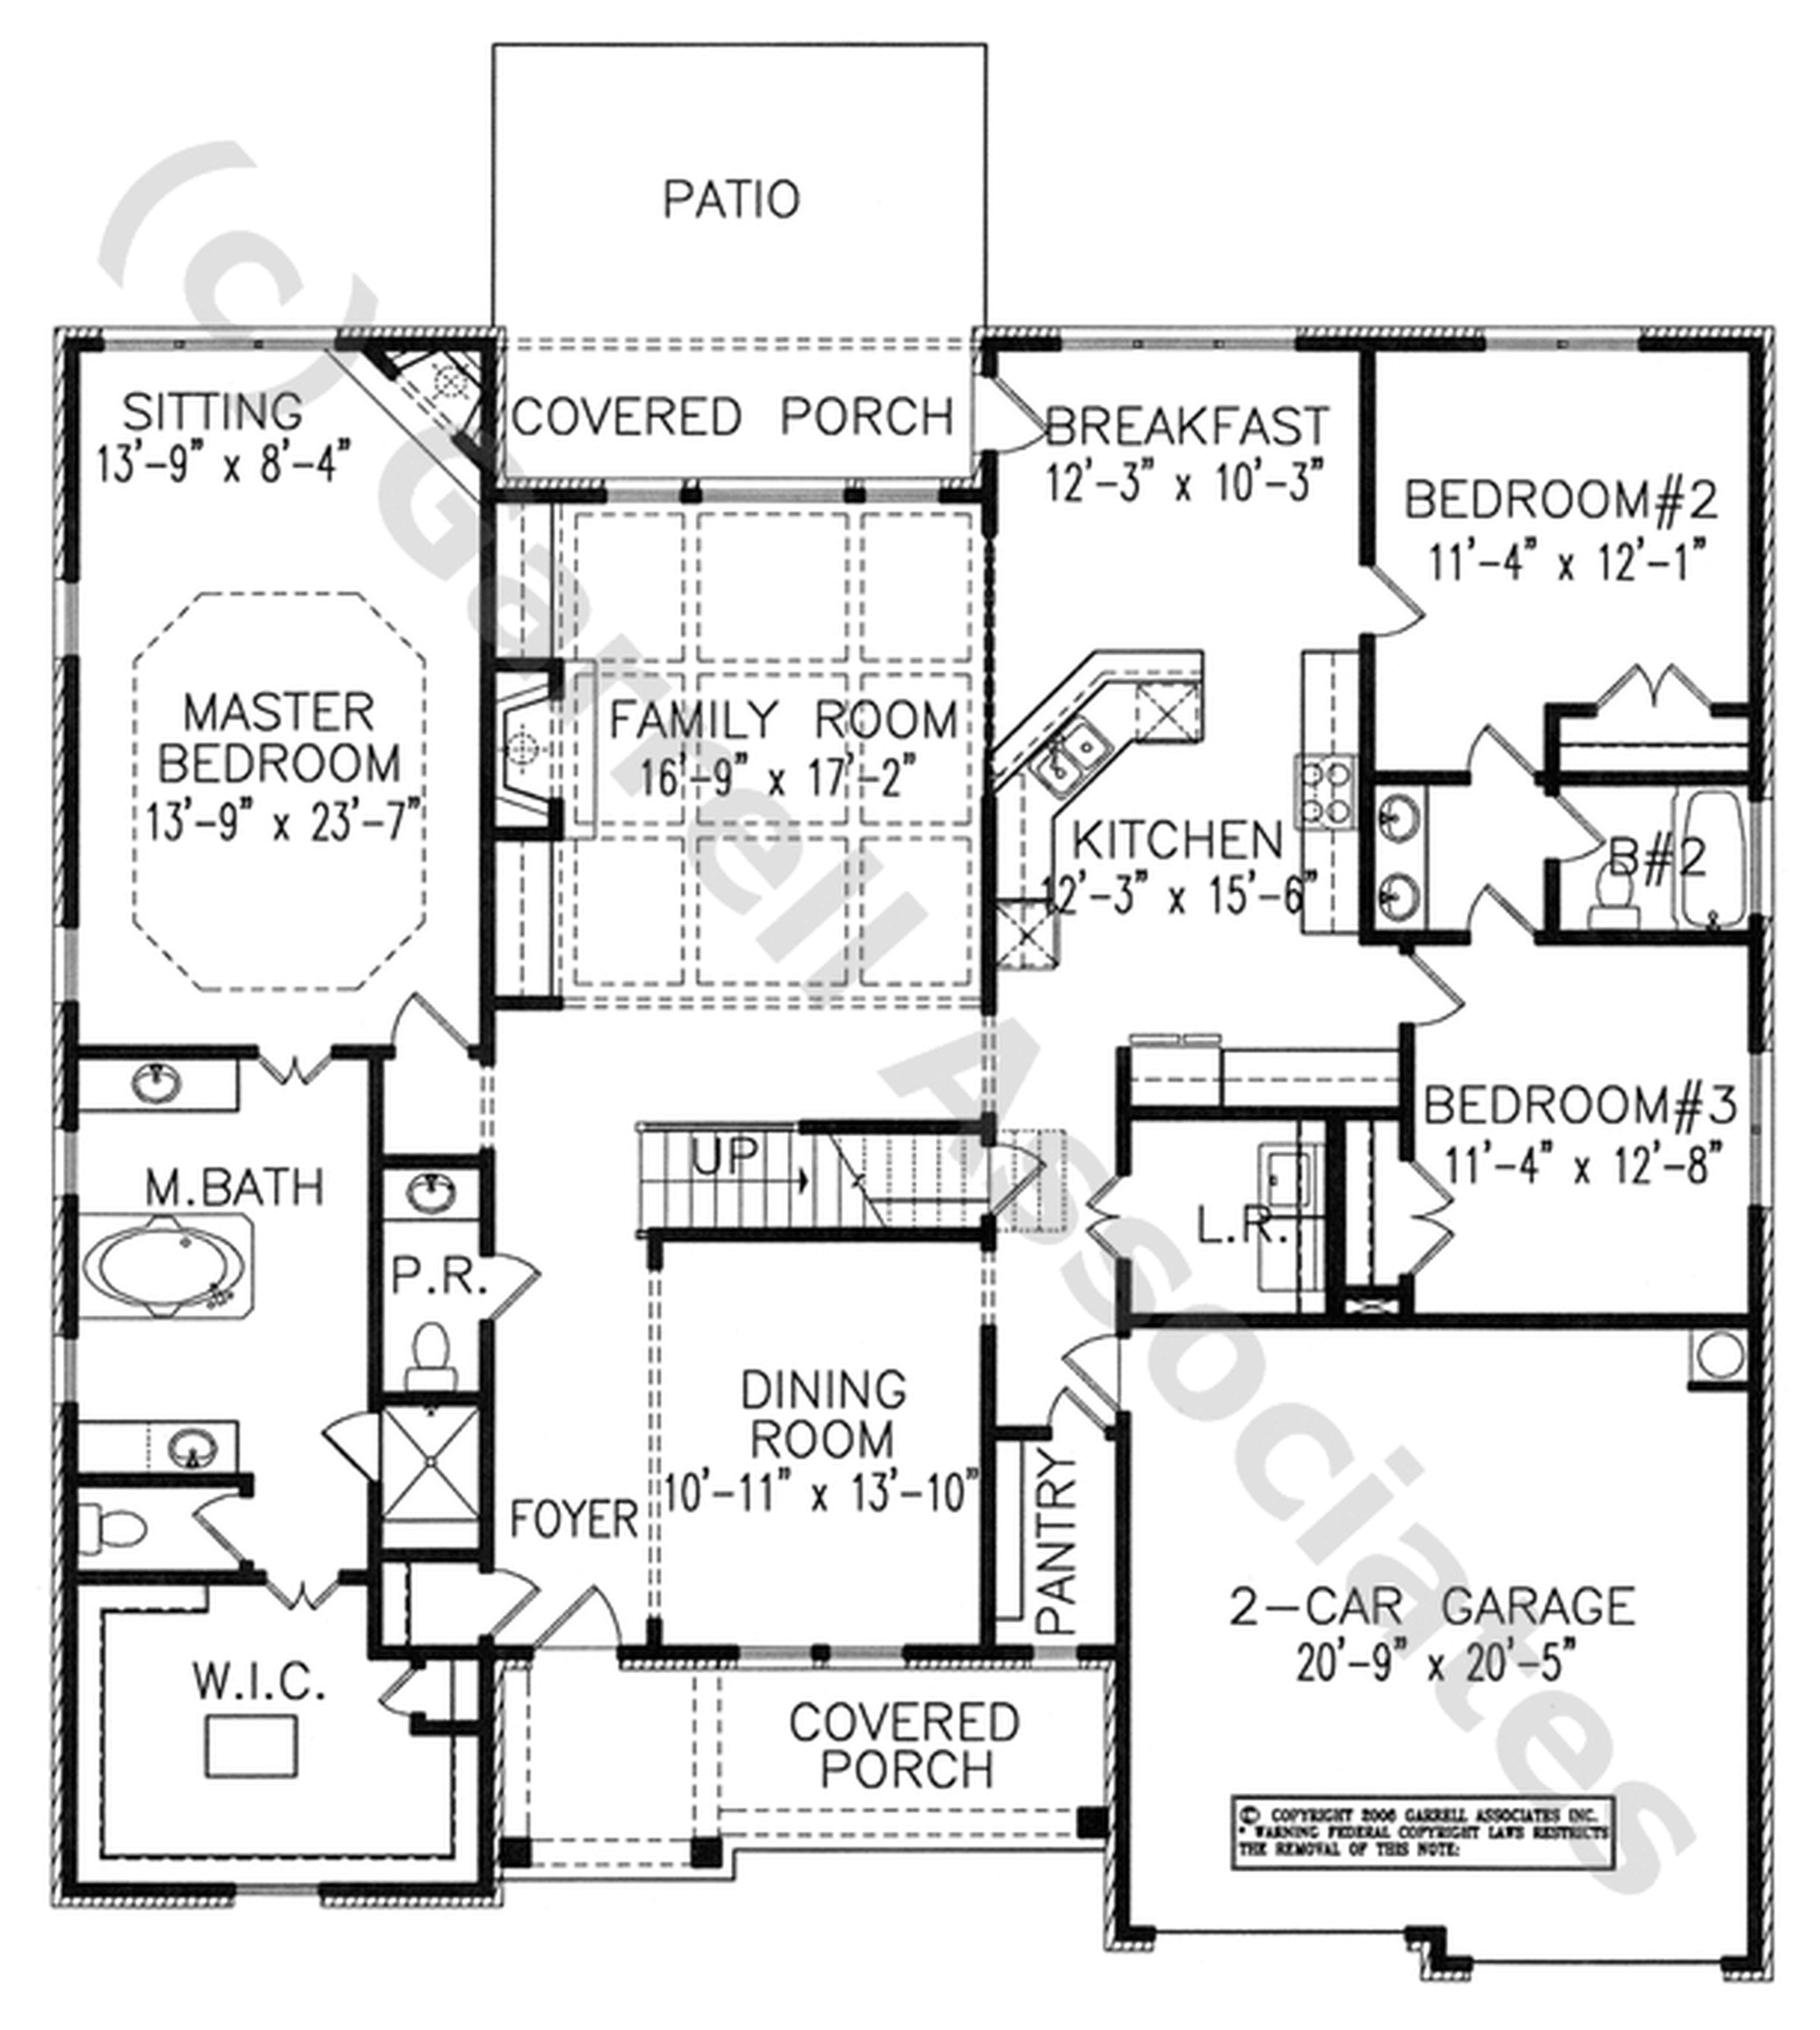 Drawn building contemporary Drawing Plans Drawing House Plans